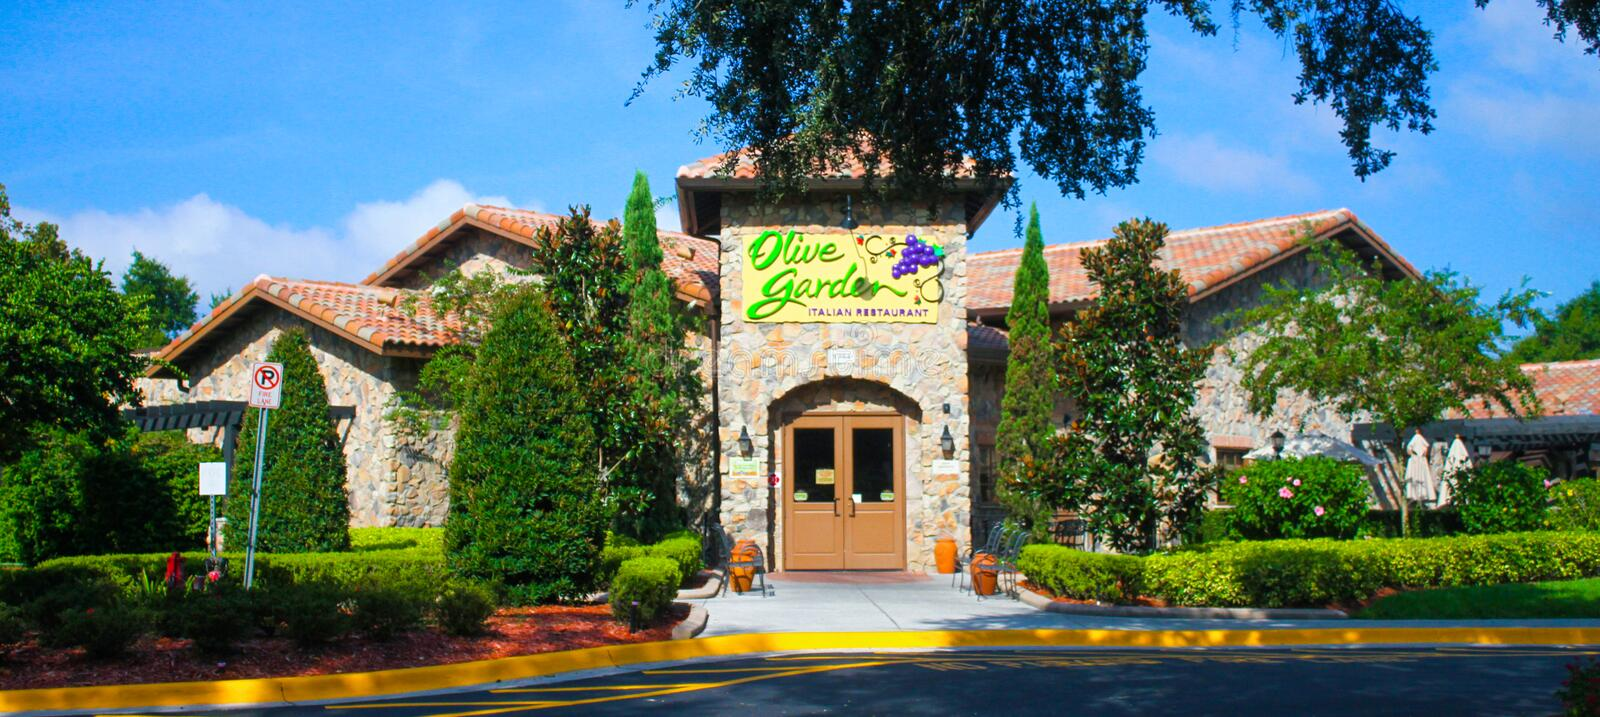 Olive Garden Locations Orlando | Latest News On Design & Architecture.